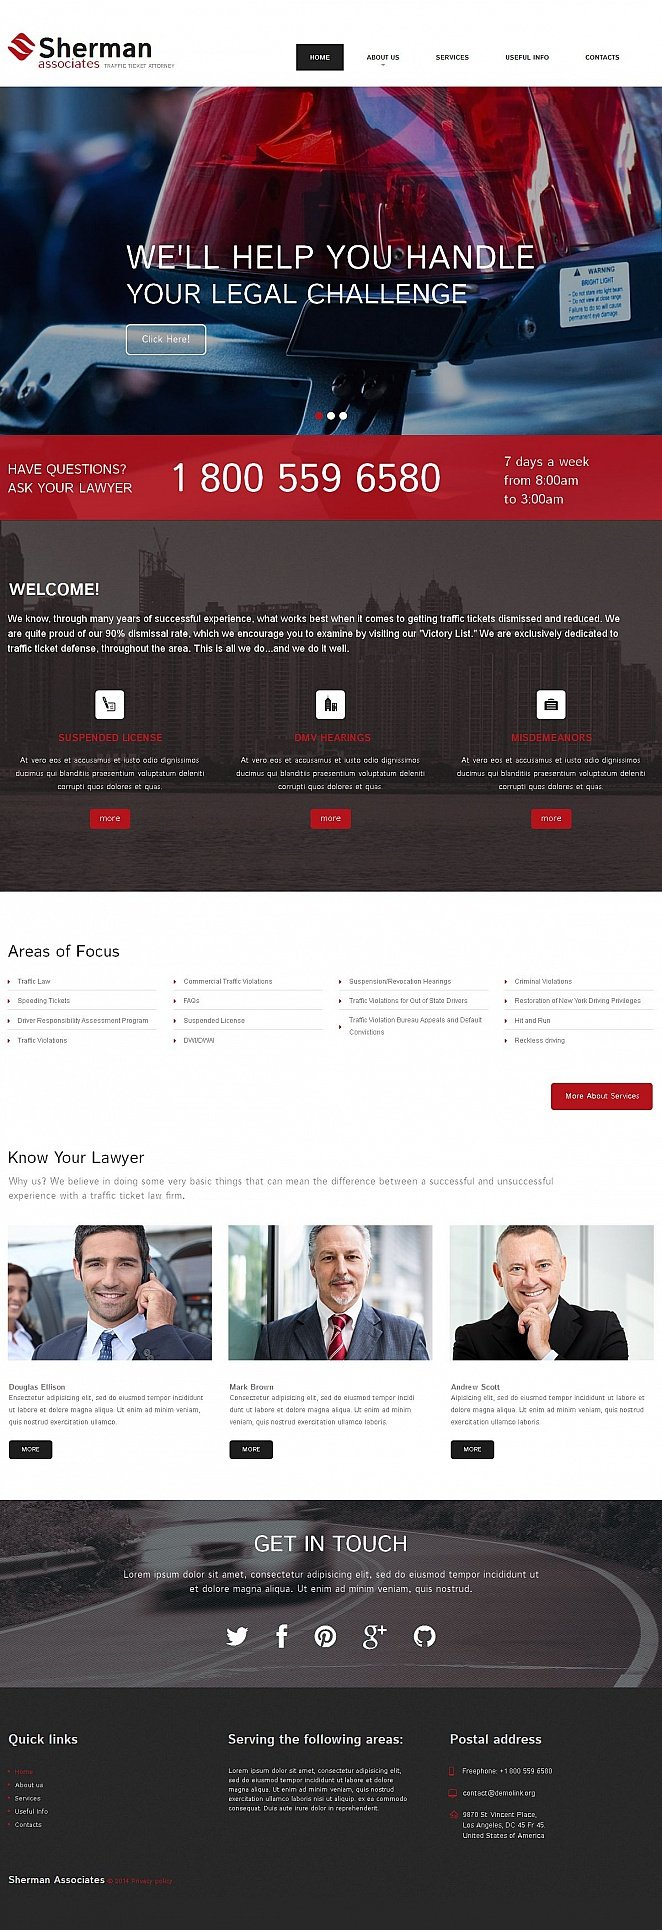 Law Website Template with Creative Design - image